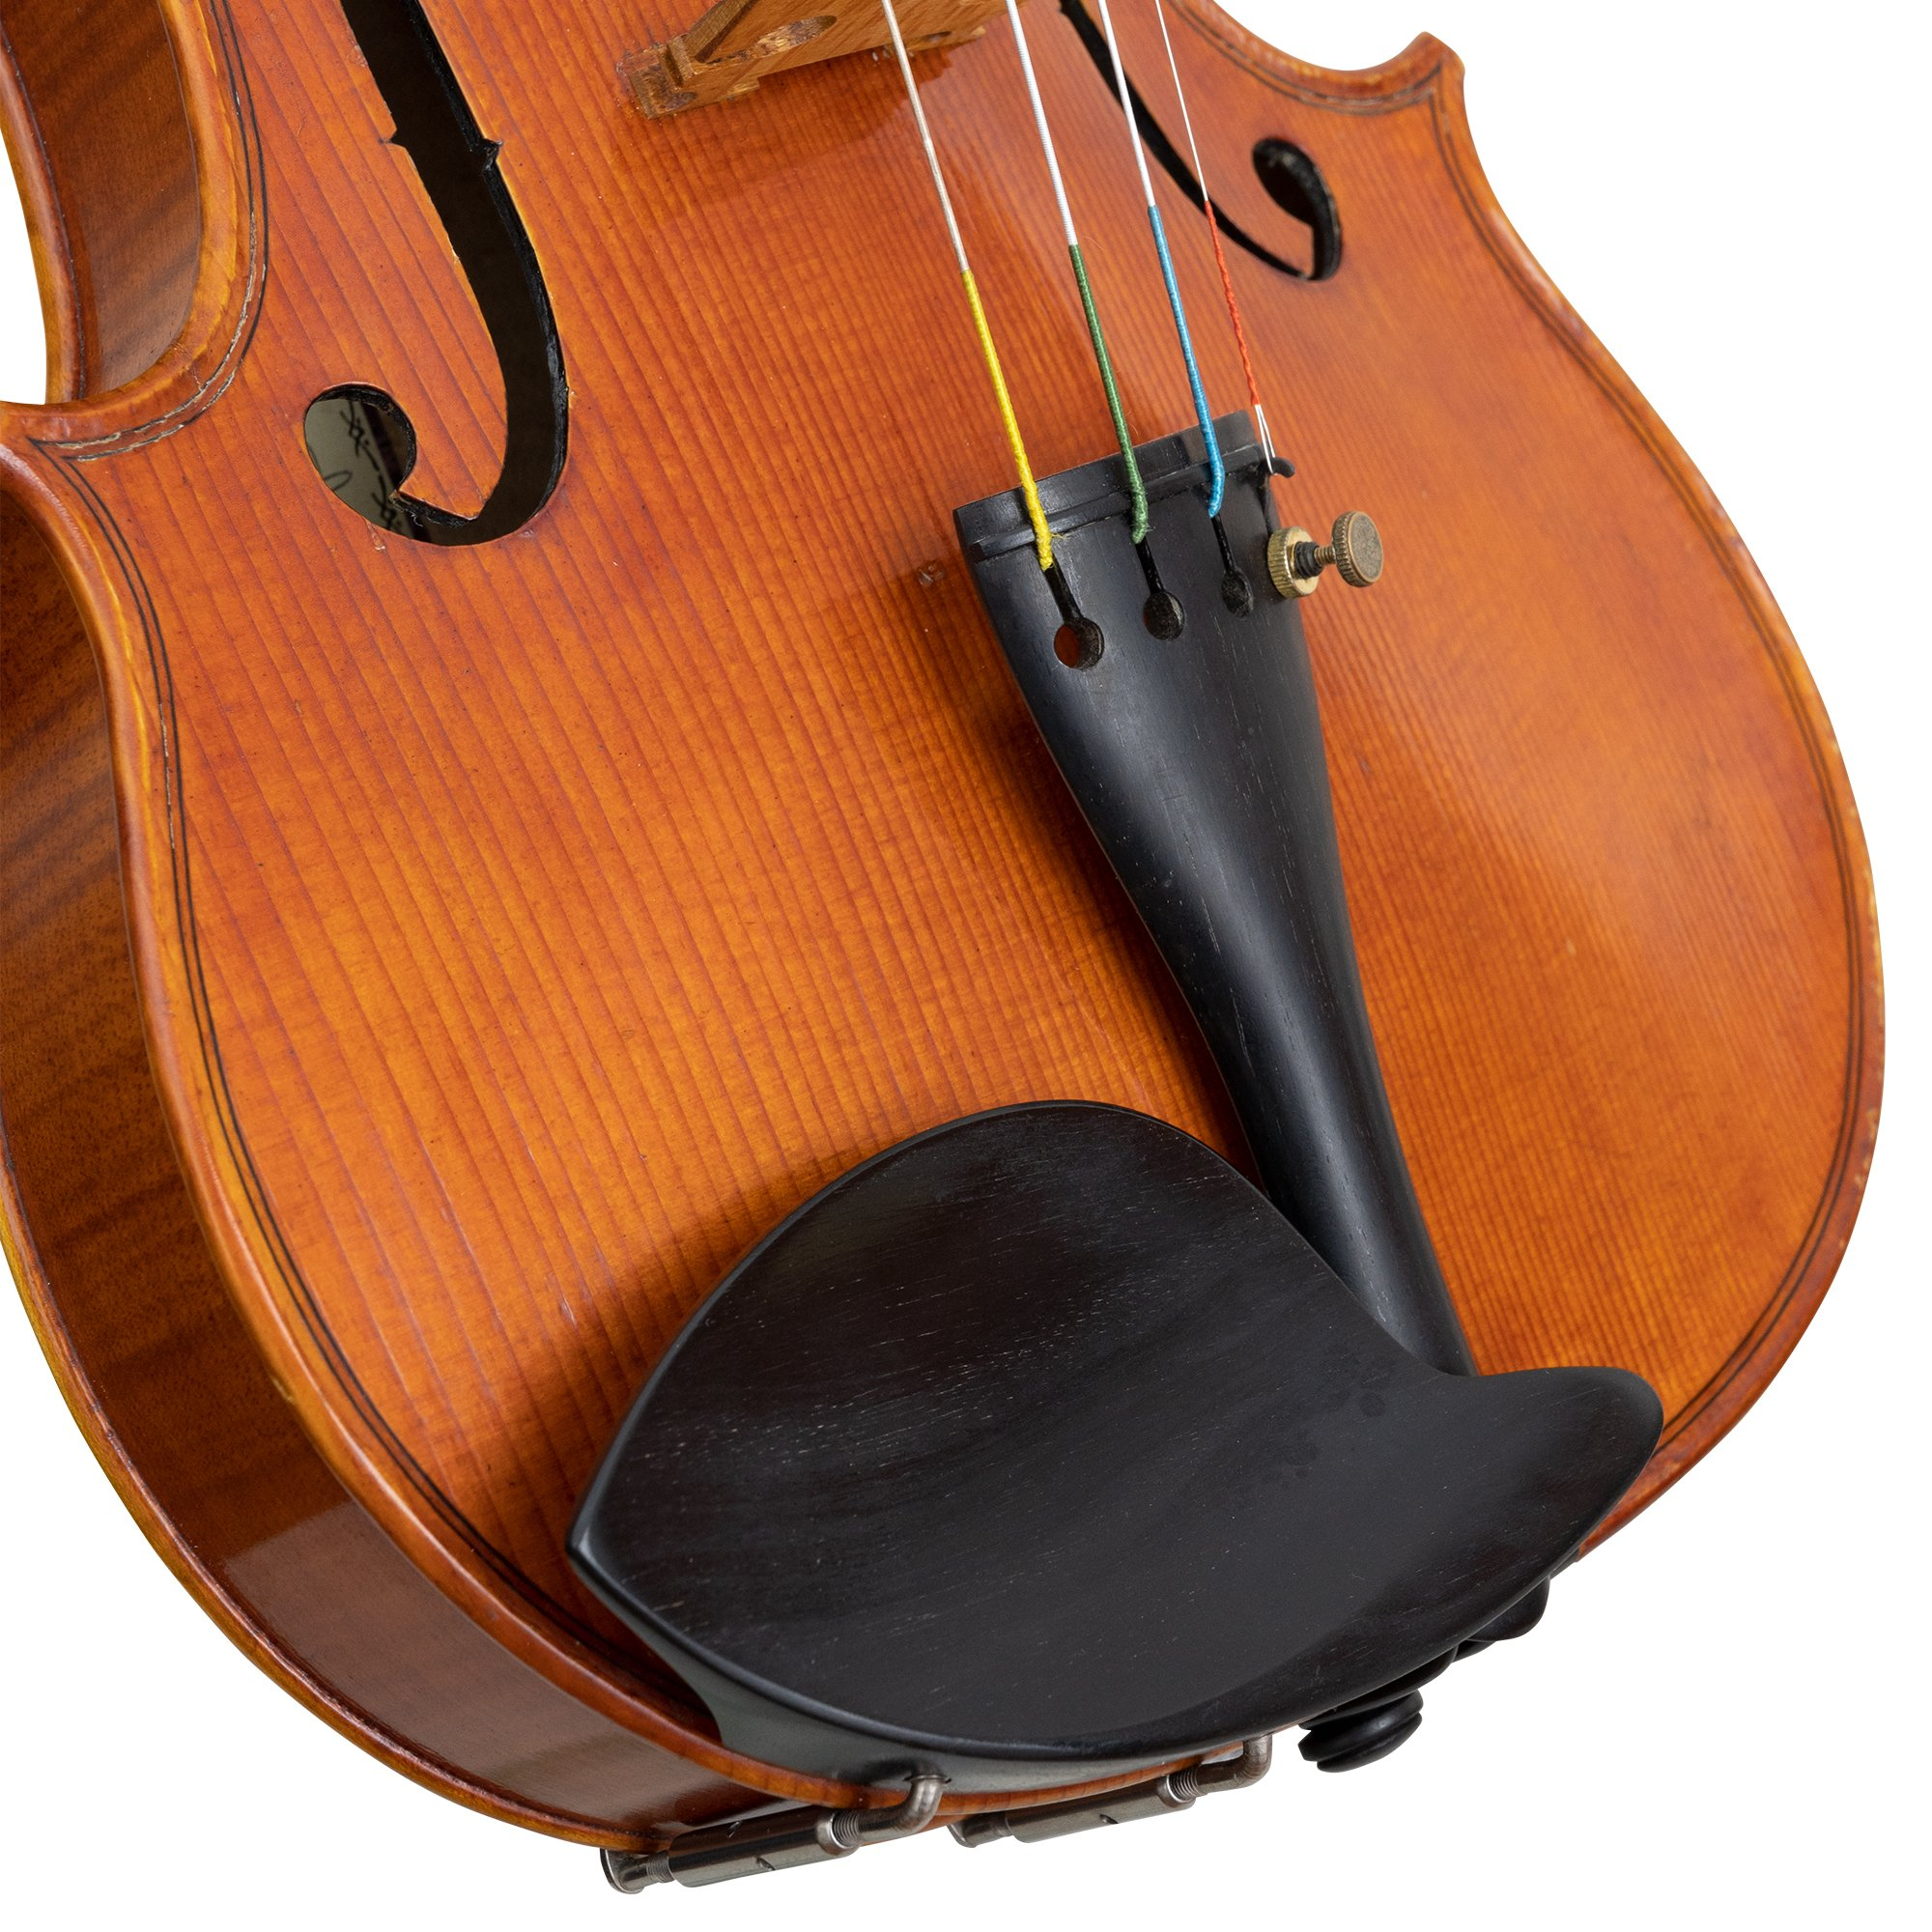 1990 Don Overstreet Violin in action